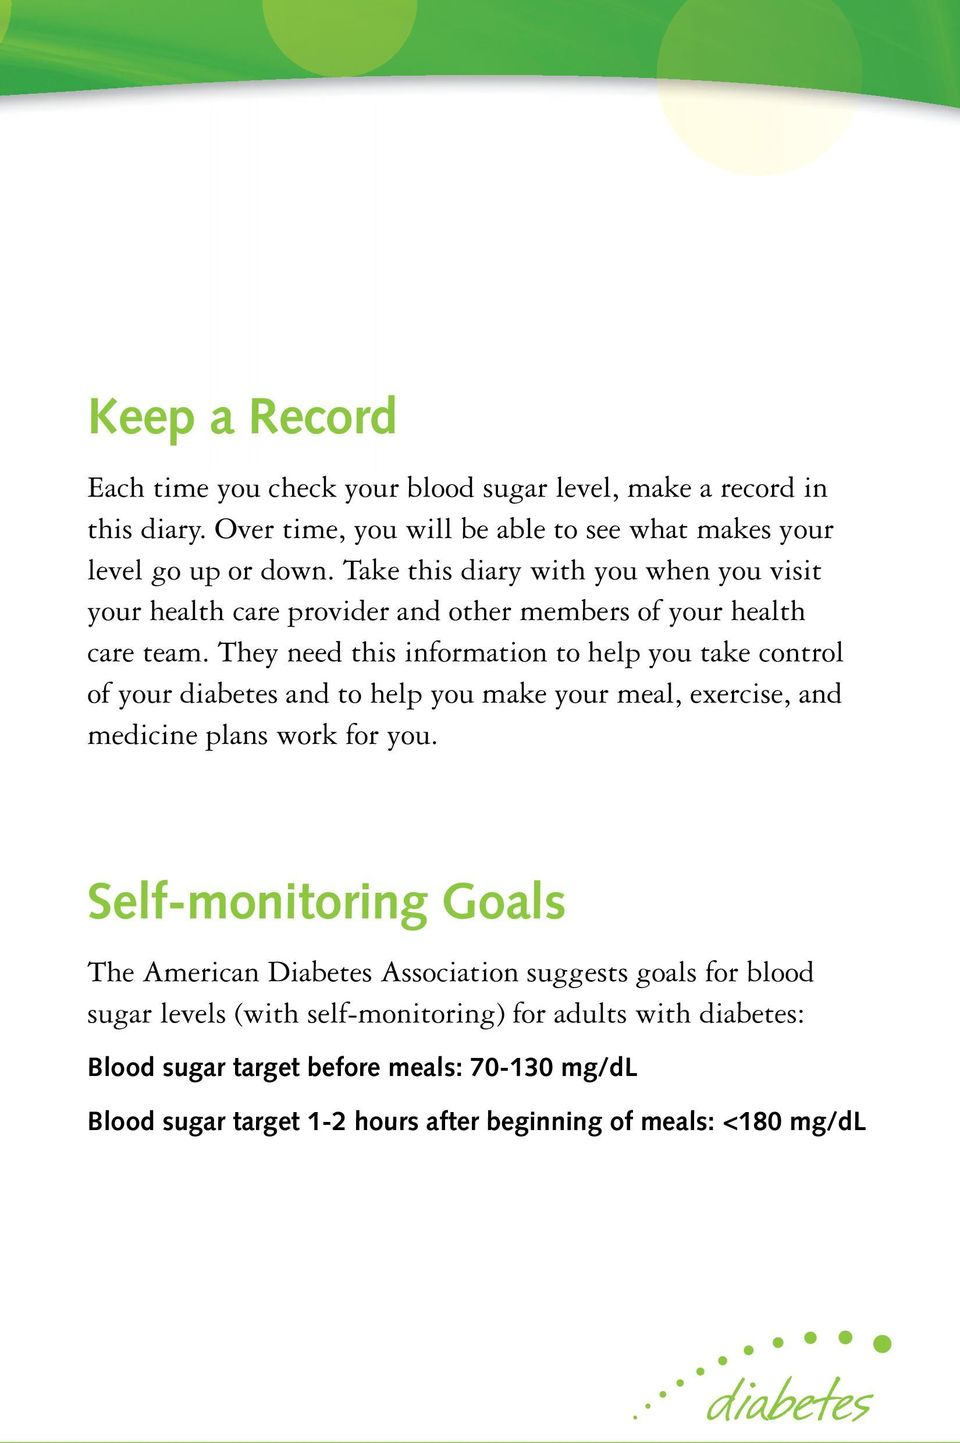 They need this information to help you take control of your diabetes and to help you make your meal, exercise, and medicine plans work for you.